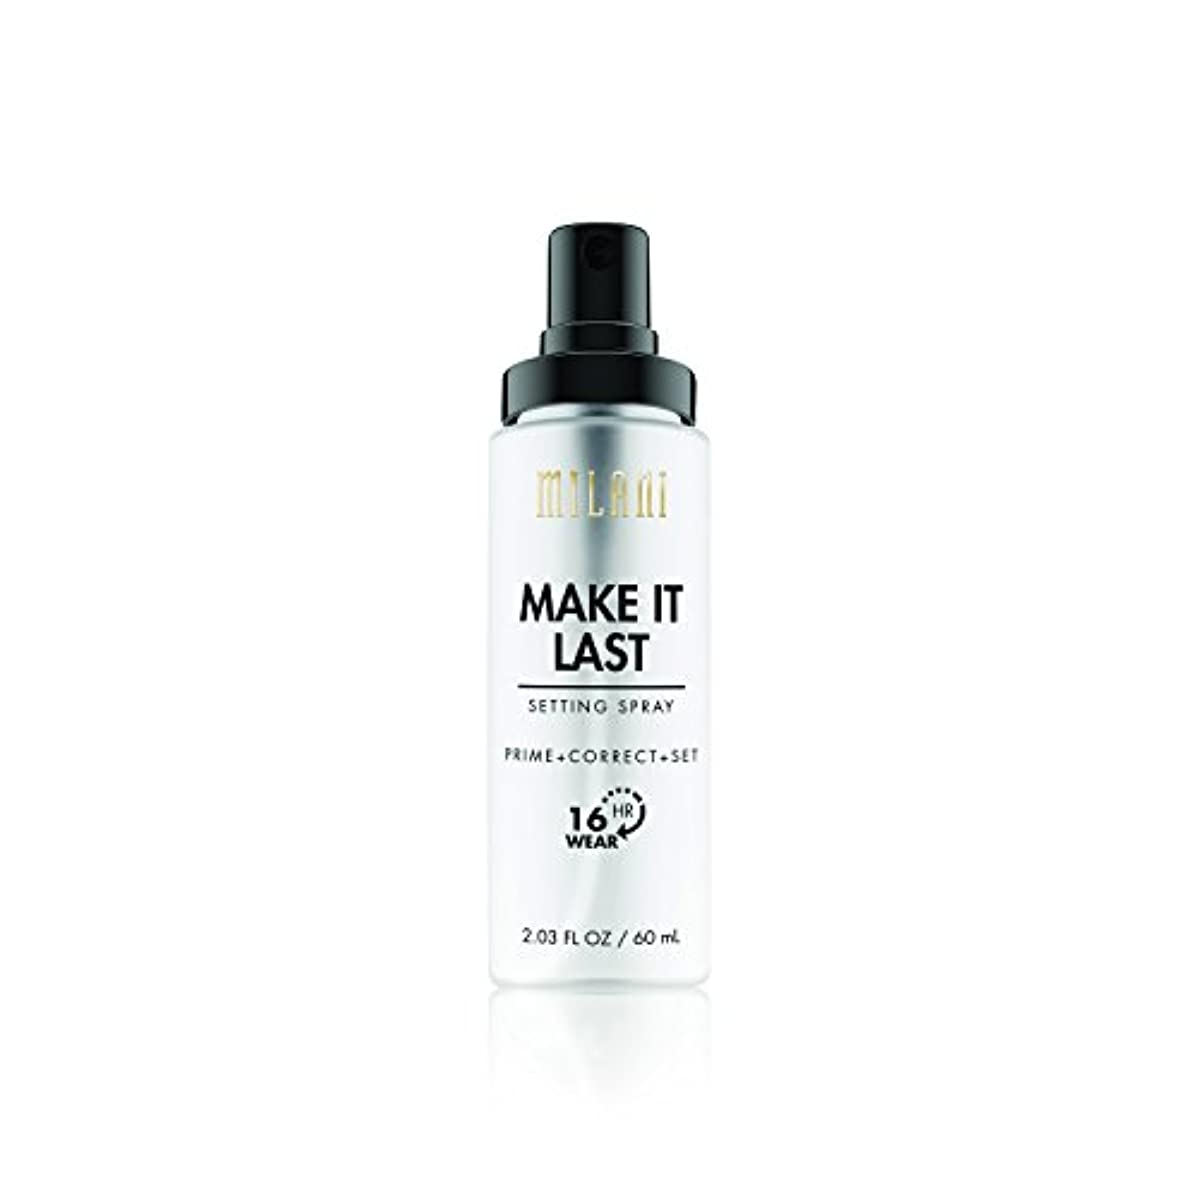 路面電車感動するファンMILANI Make It Last Setting Spray - Prime + Correct + Set (並行輸入品)